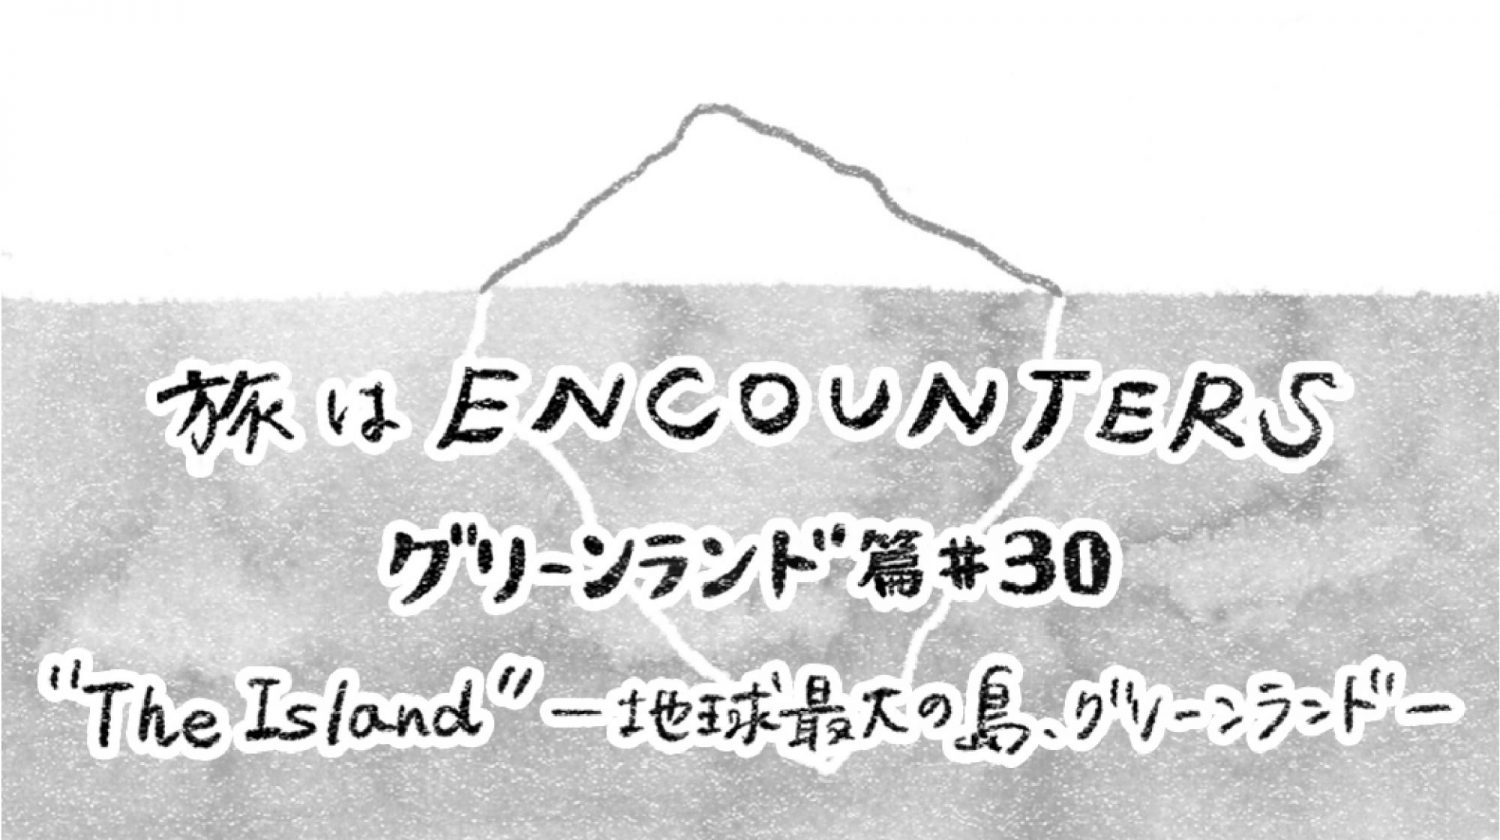 Travel is ENCOUNTERS (グリーンランド篇) #30